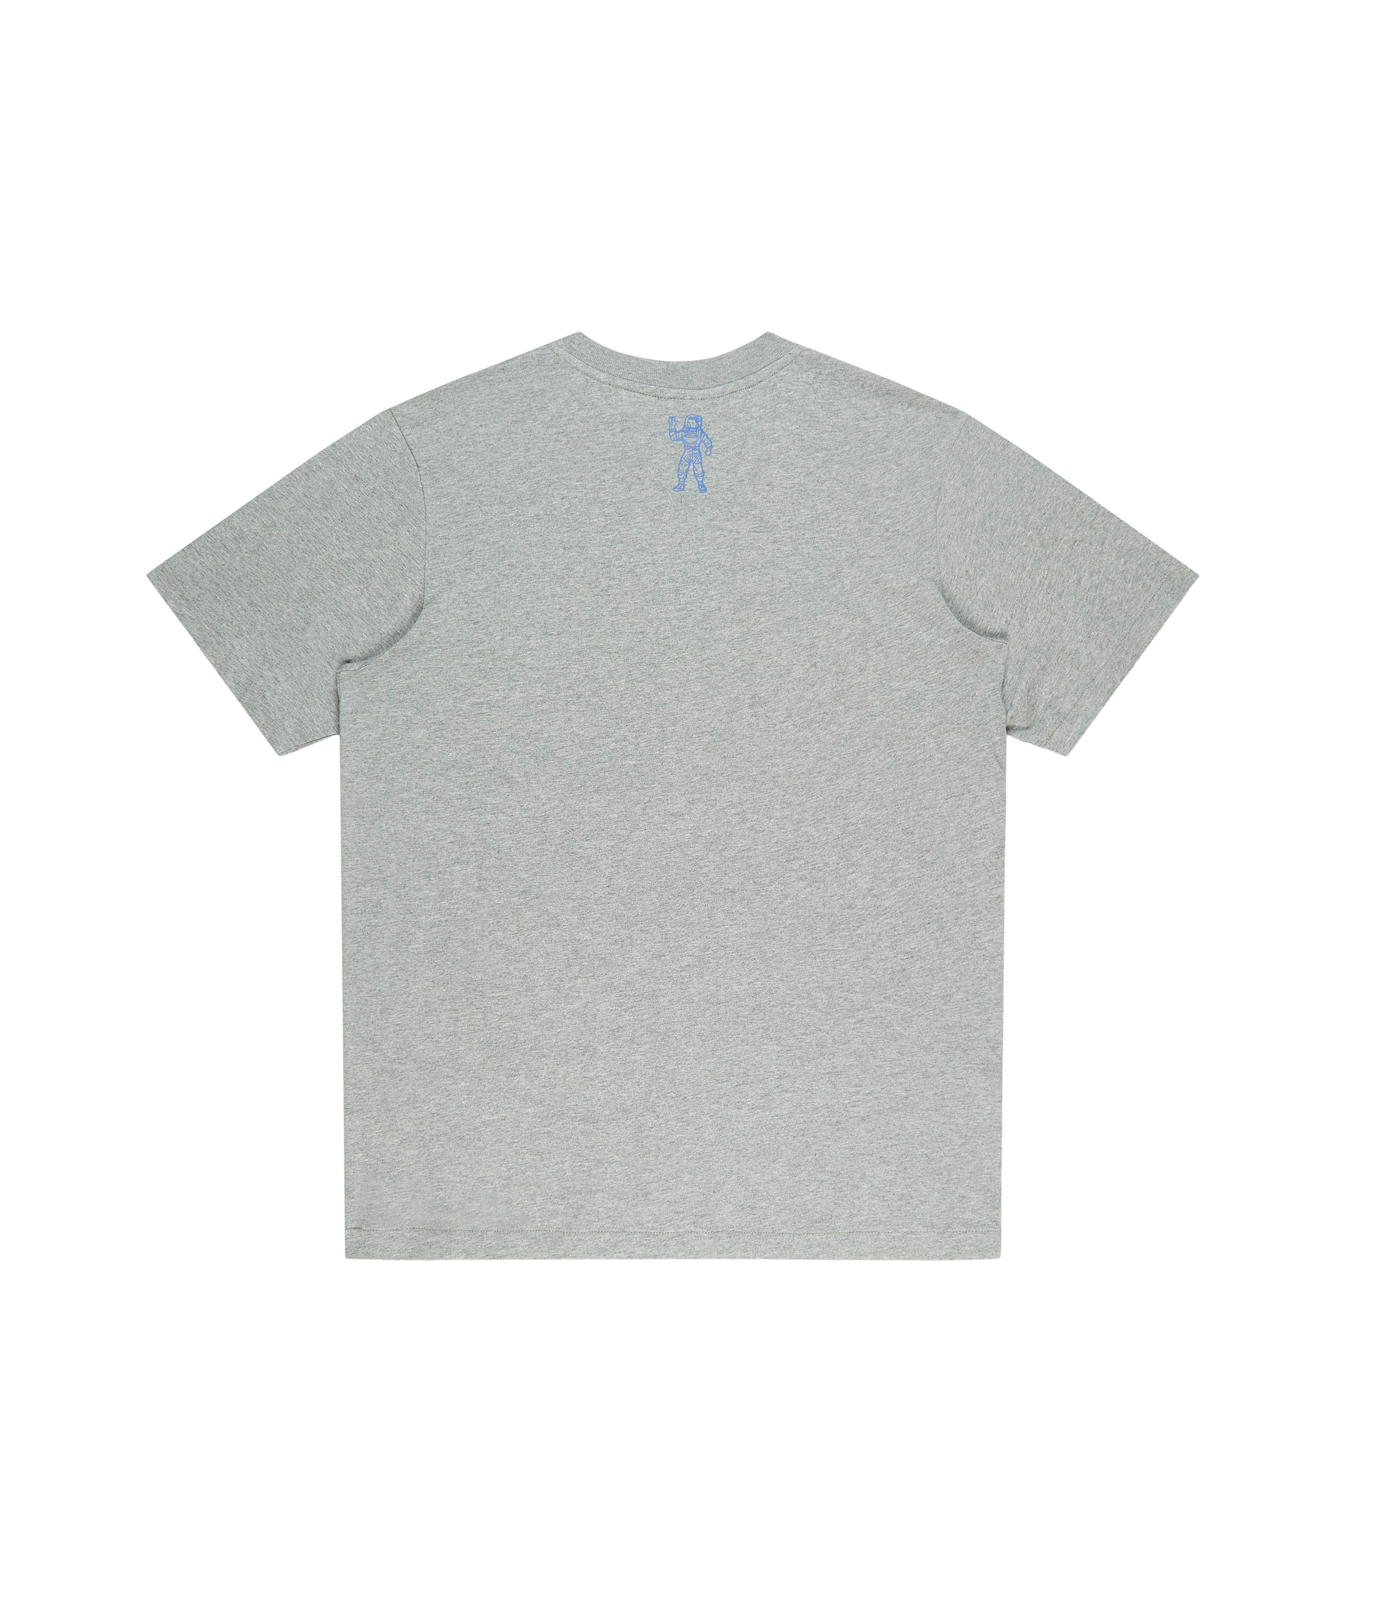 PUFF PRINT T-SHIRT - HEATHER GREY